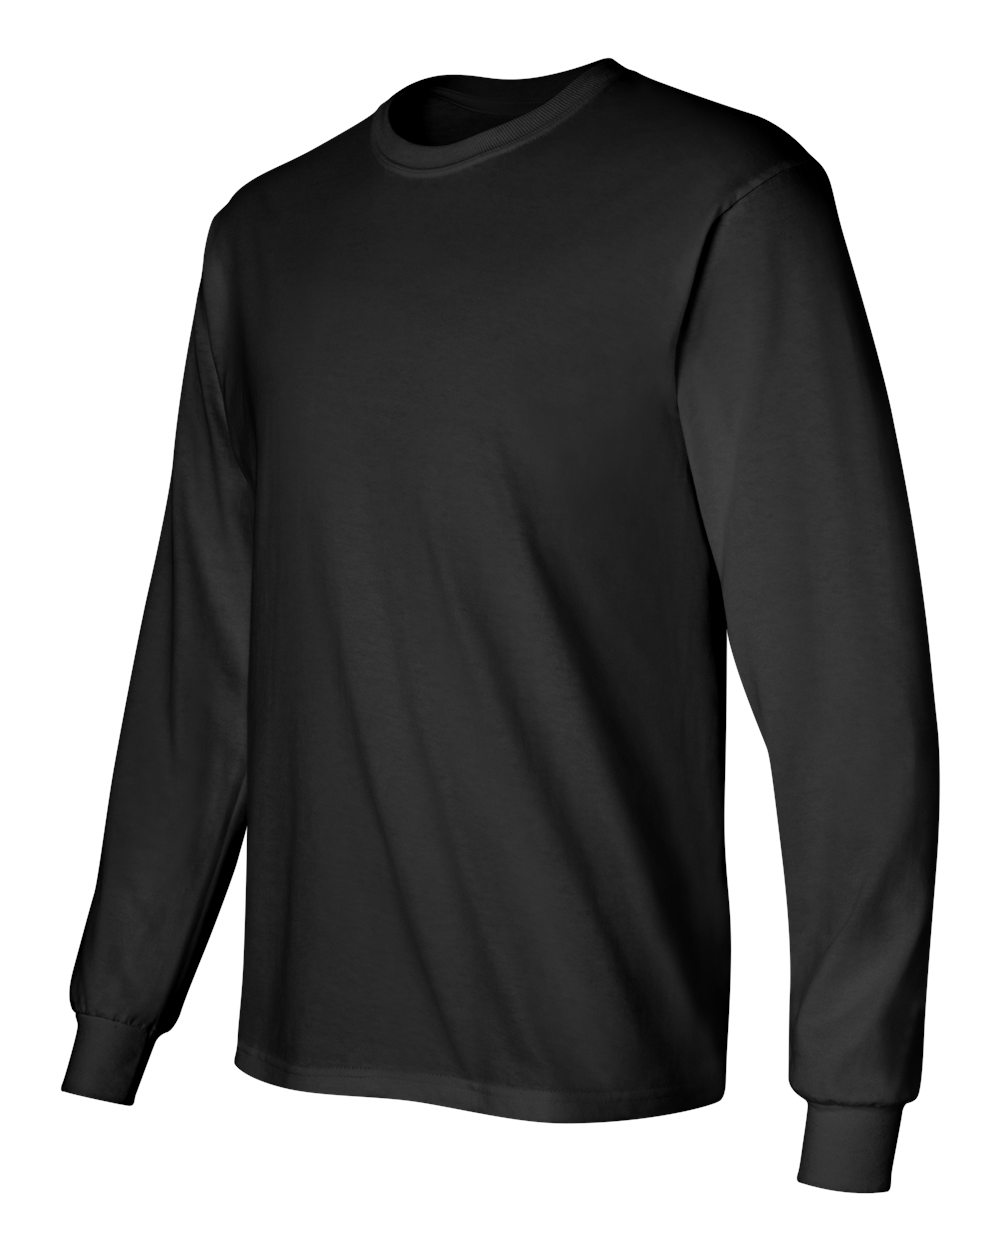 Gildan-Men-039-s-Ultra-Cotton-6-oz-Long-Sleeve-T-Shirt-G240-S-5XL thumbnail 7